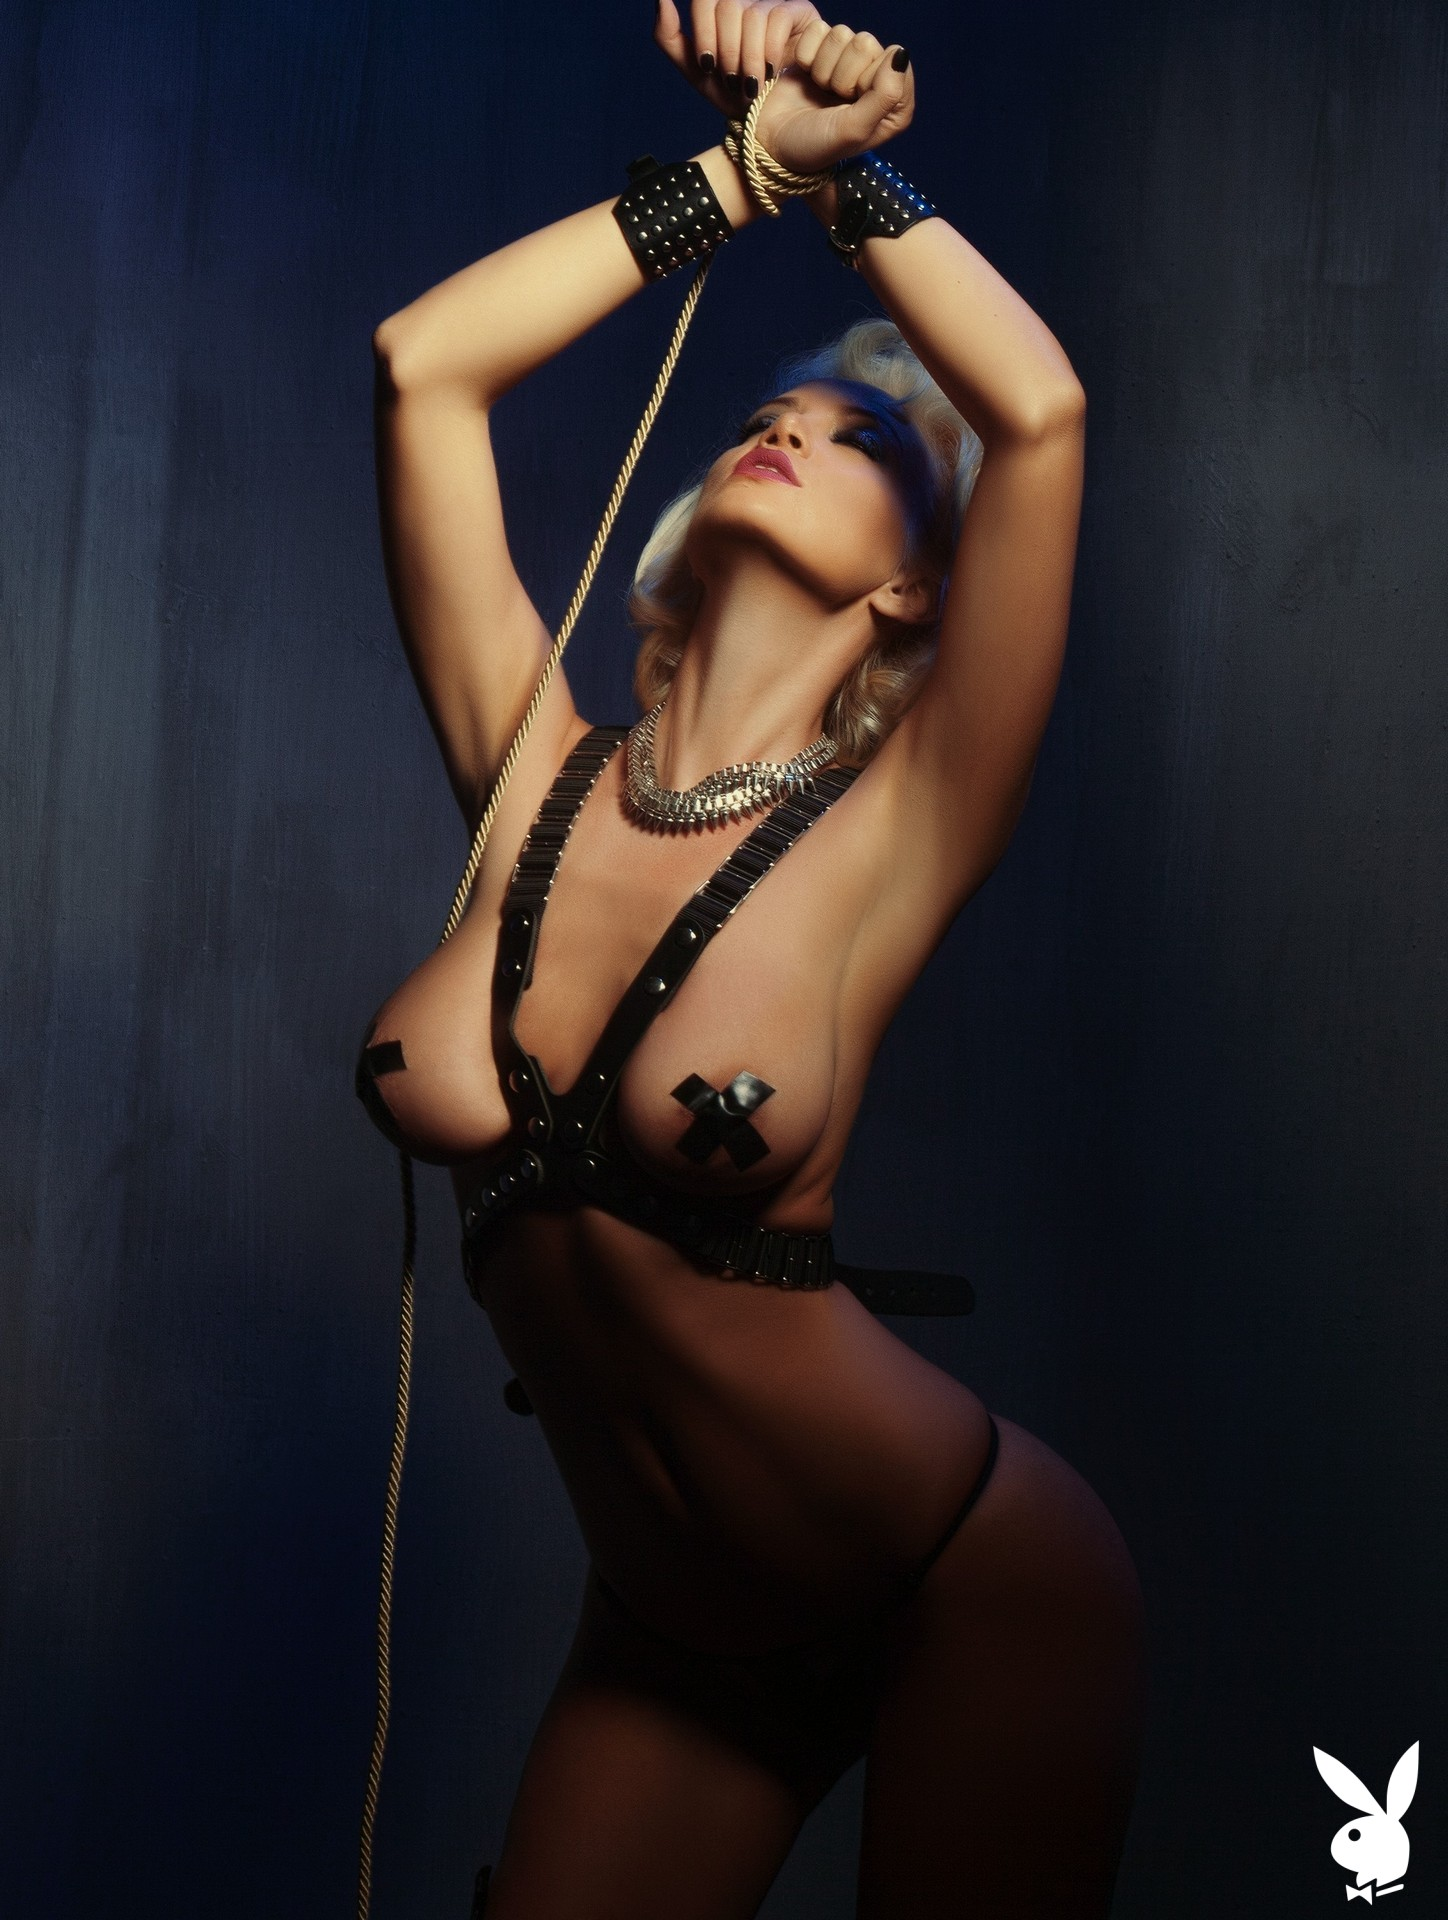 Bondage, Harness, Body Harness, Black Body Harness, Black Harness, Nipple Pasties, Thong, Black Thong, Bdsm, Blindfold, Handcuffs, Fetish, Rope, Tied